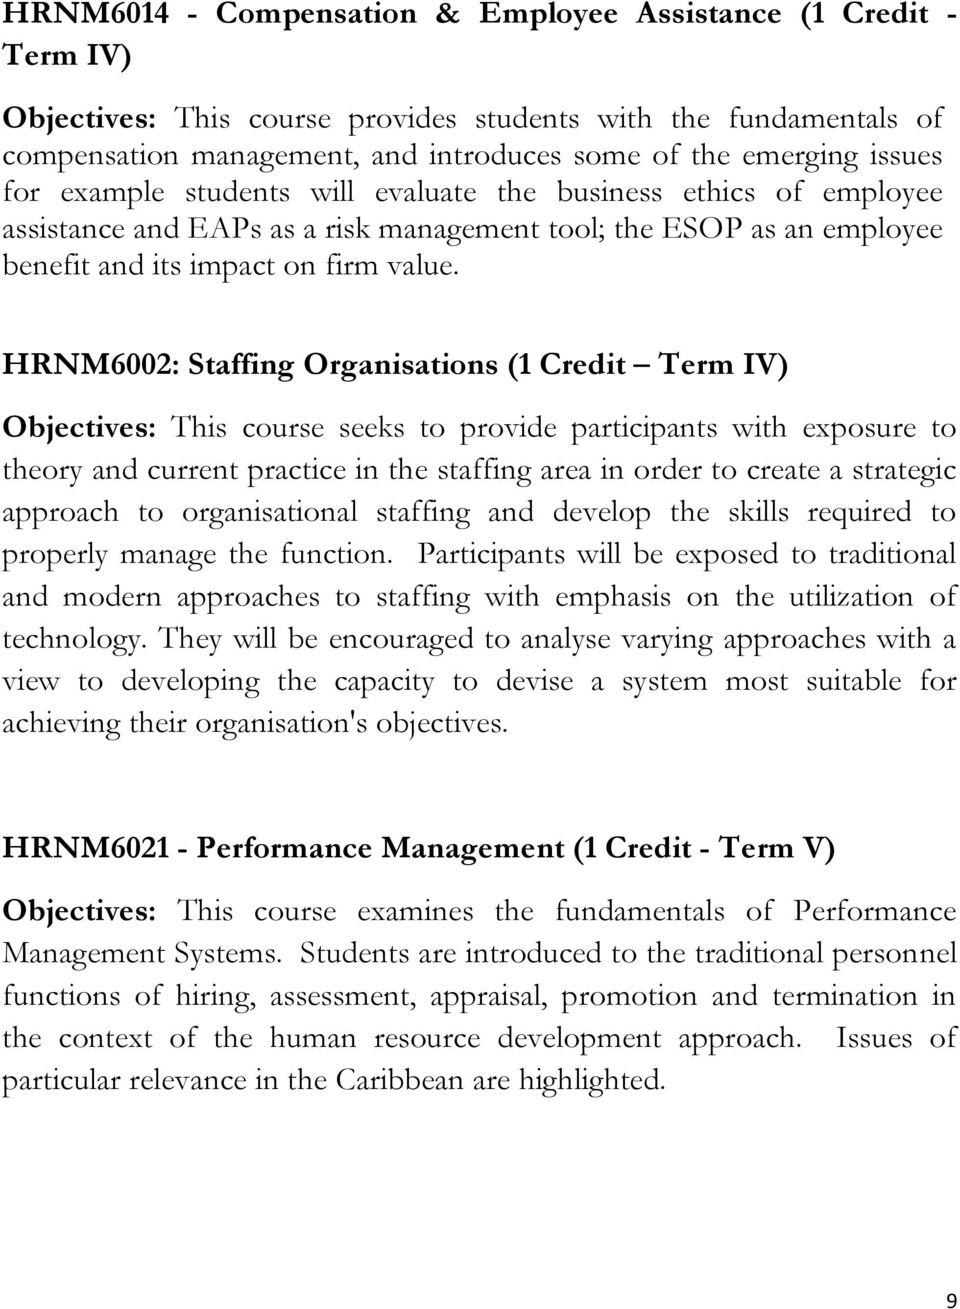 HRNM6002: Staffing Organisations (1 Credit Term IV) Objectives: This course seeks to provide participants with exposure to theory and current practice in the staffing area in order to create a